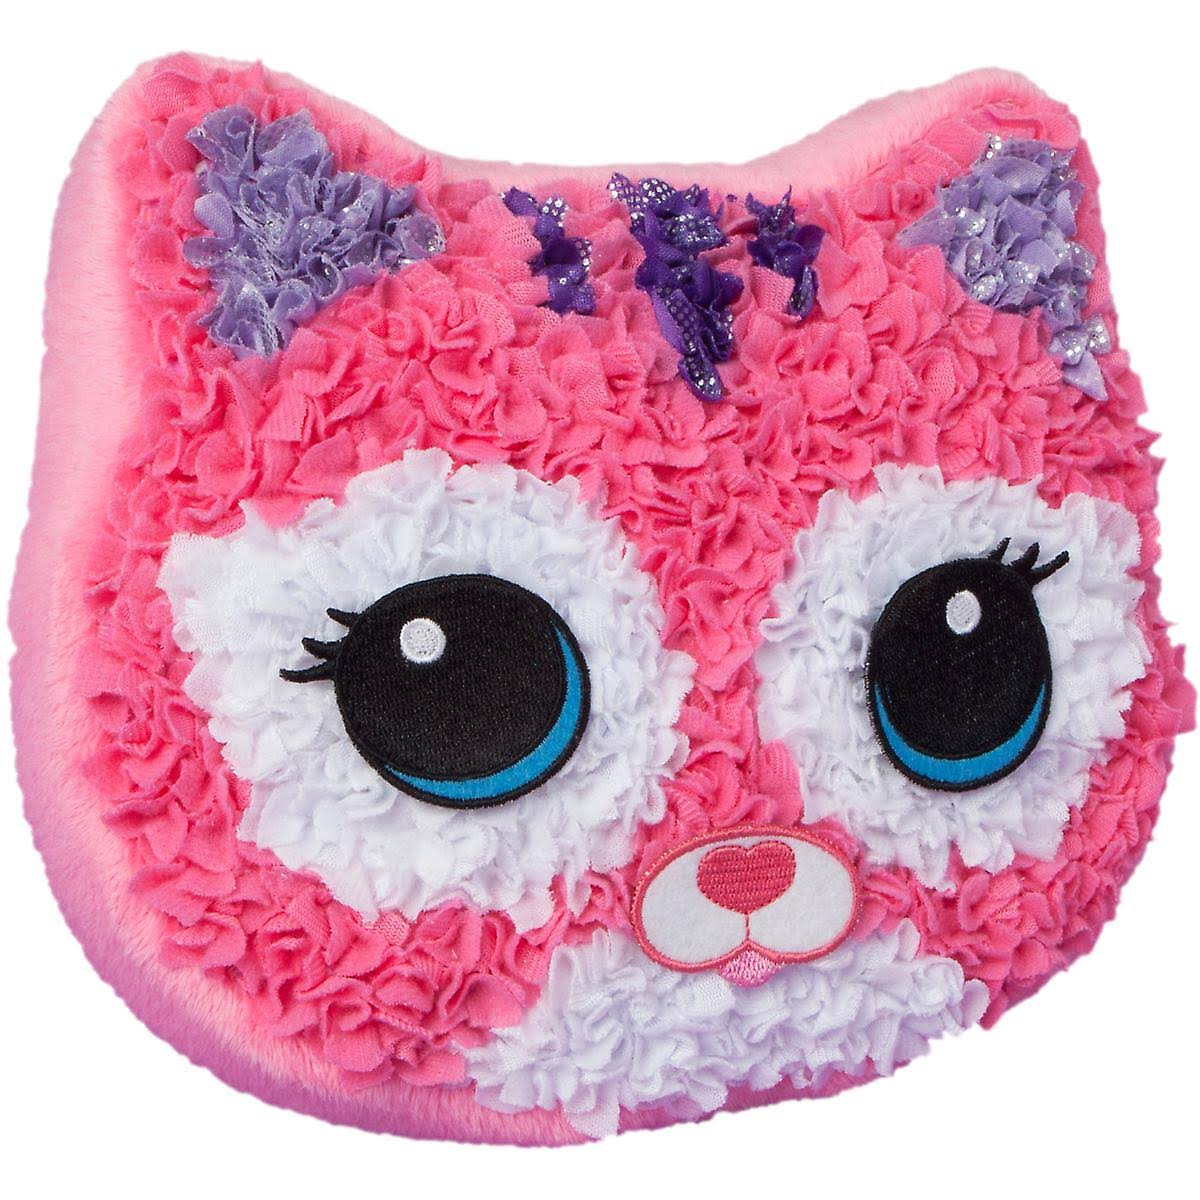 The Orb Factory Plush Craft Purr-Fect Pillow Kit